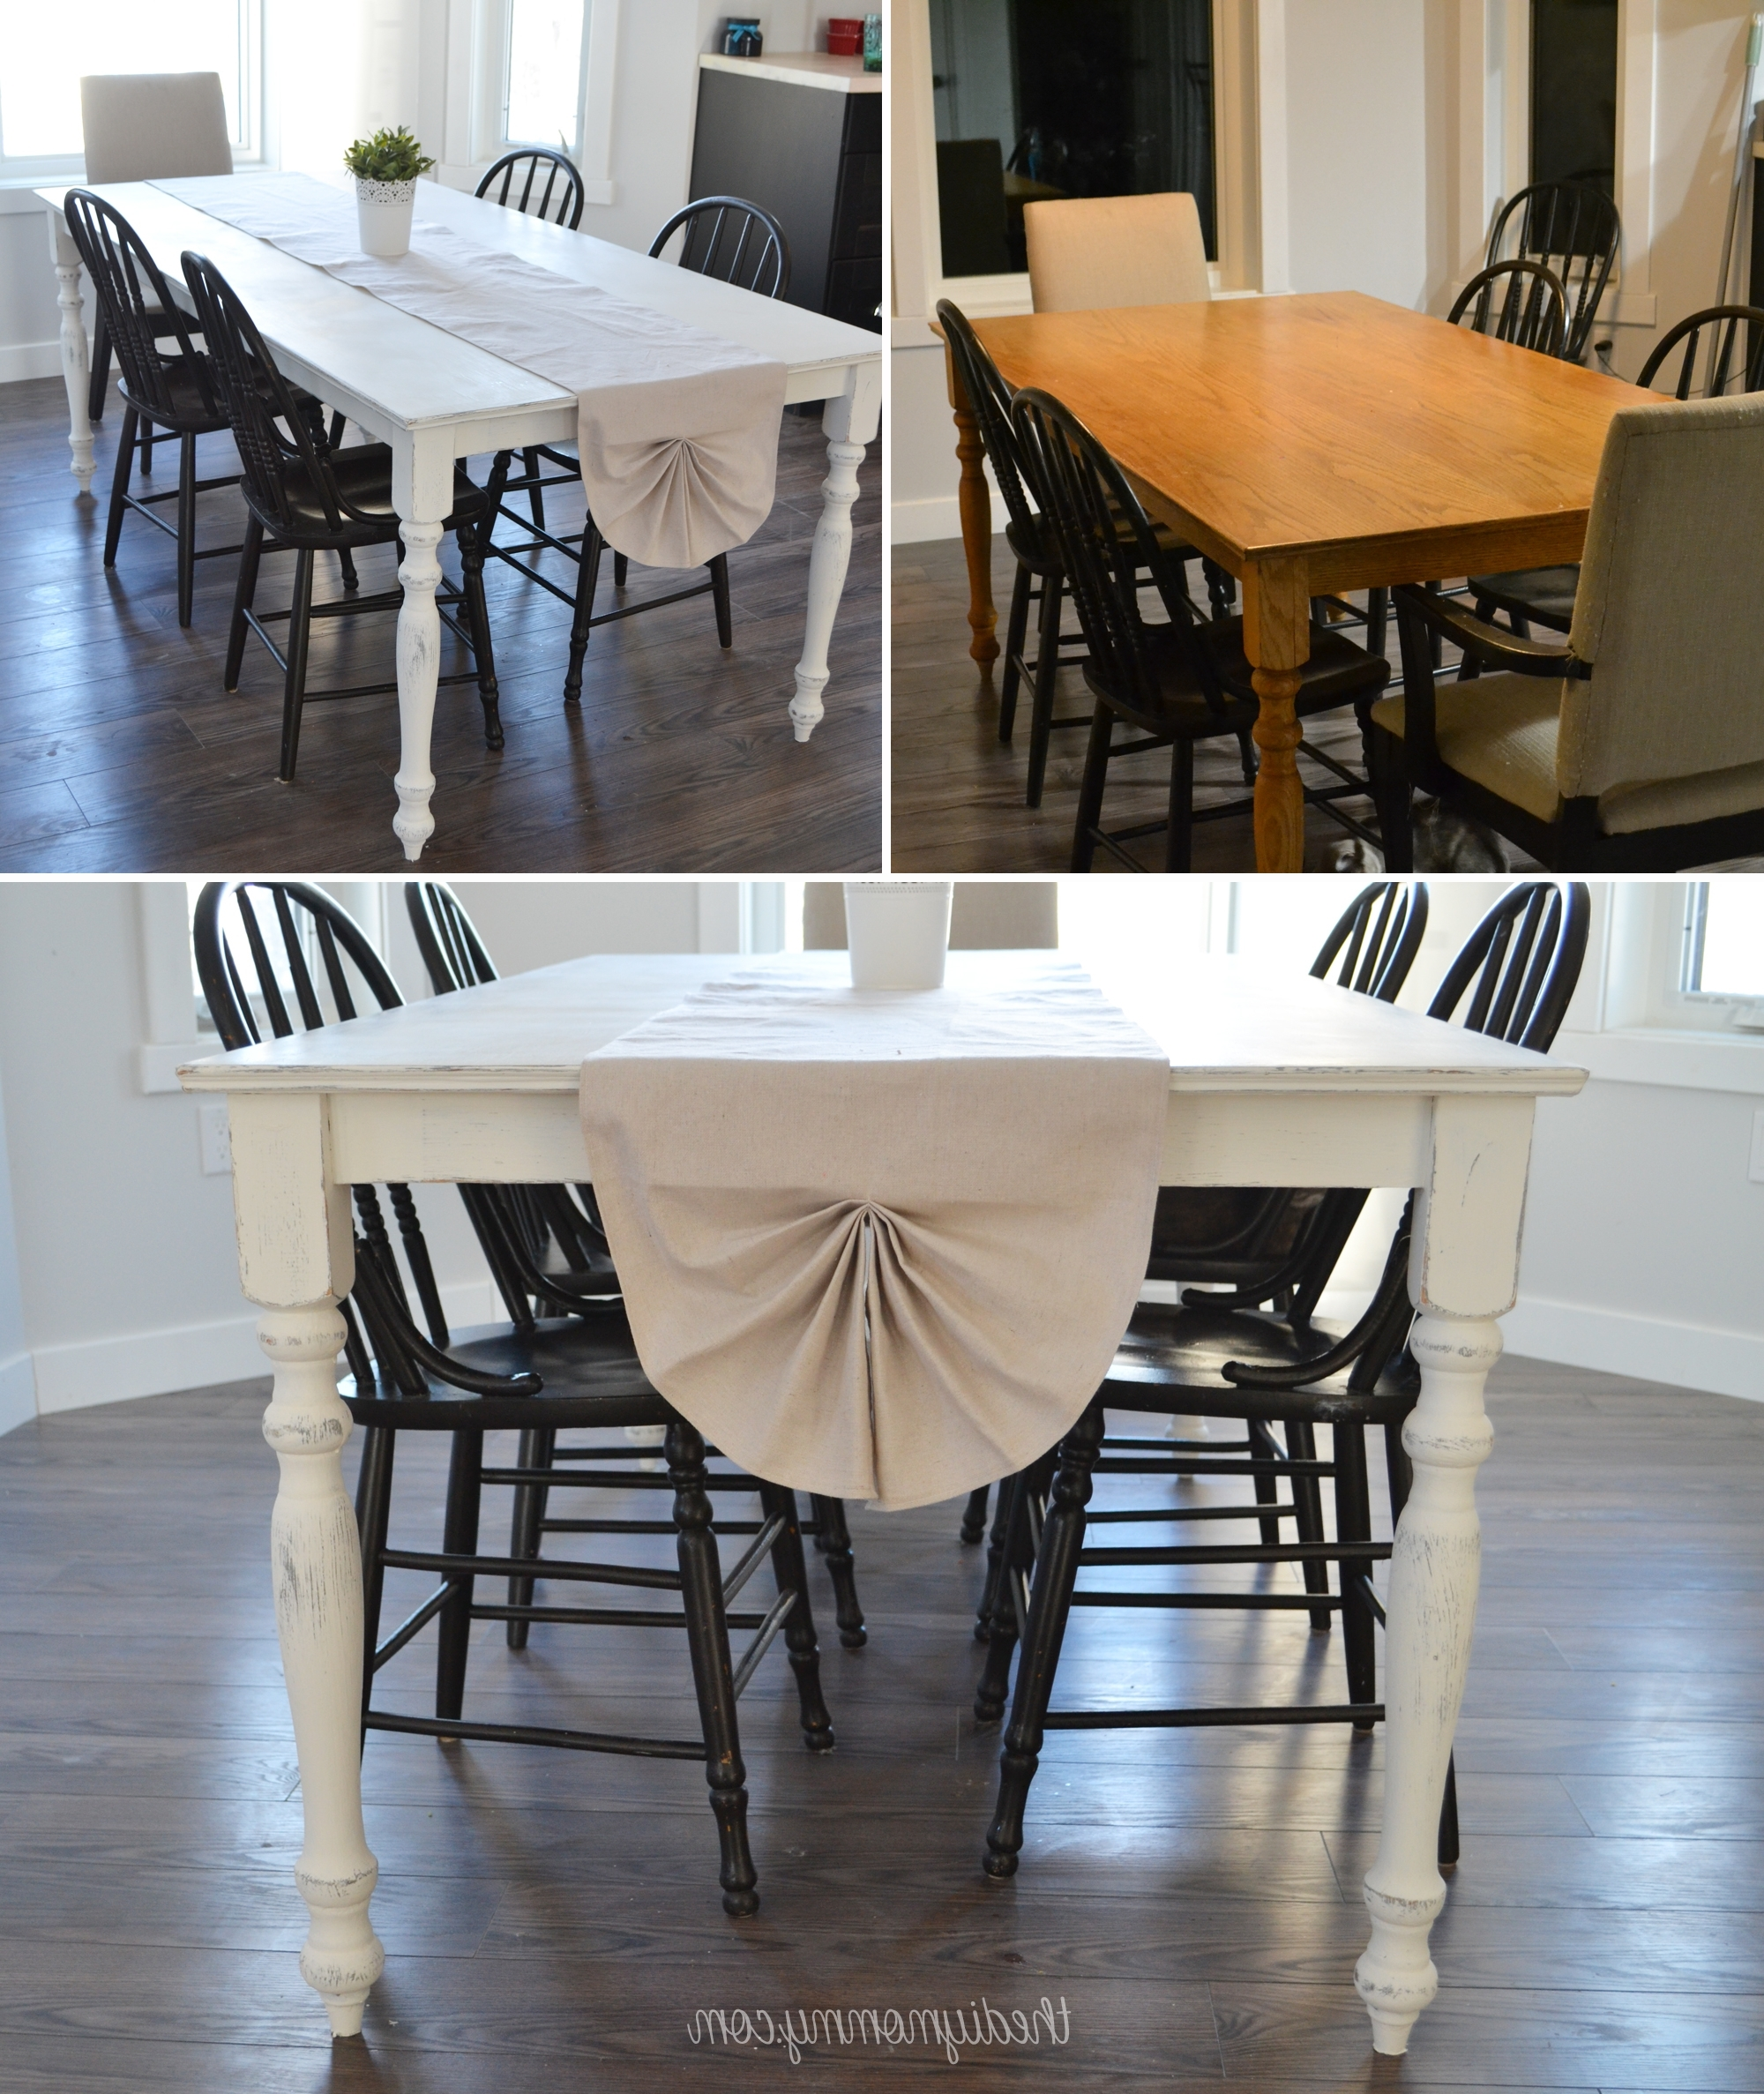 Washed Old Oak & Waxed Black Legs Bar Tables Intended For Popular A Shabby Chic Farmhouse Table With Diy Chalk Paint (View 21 of 25)